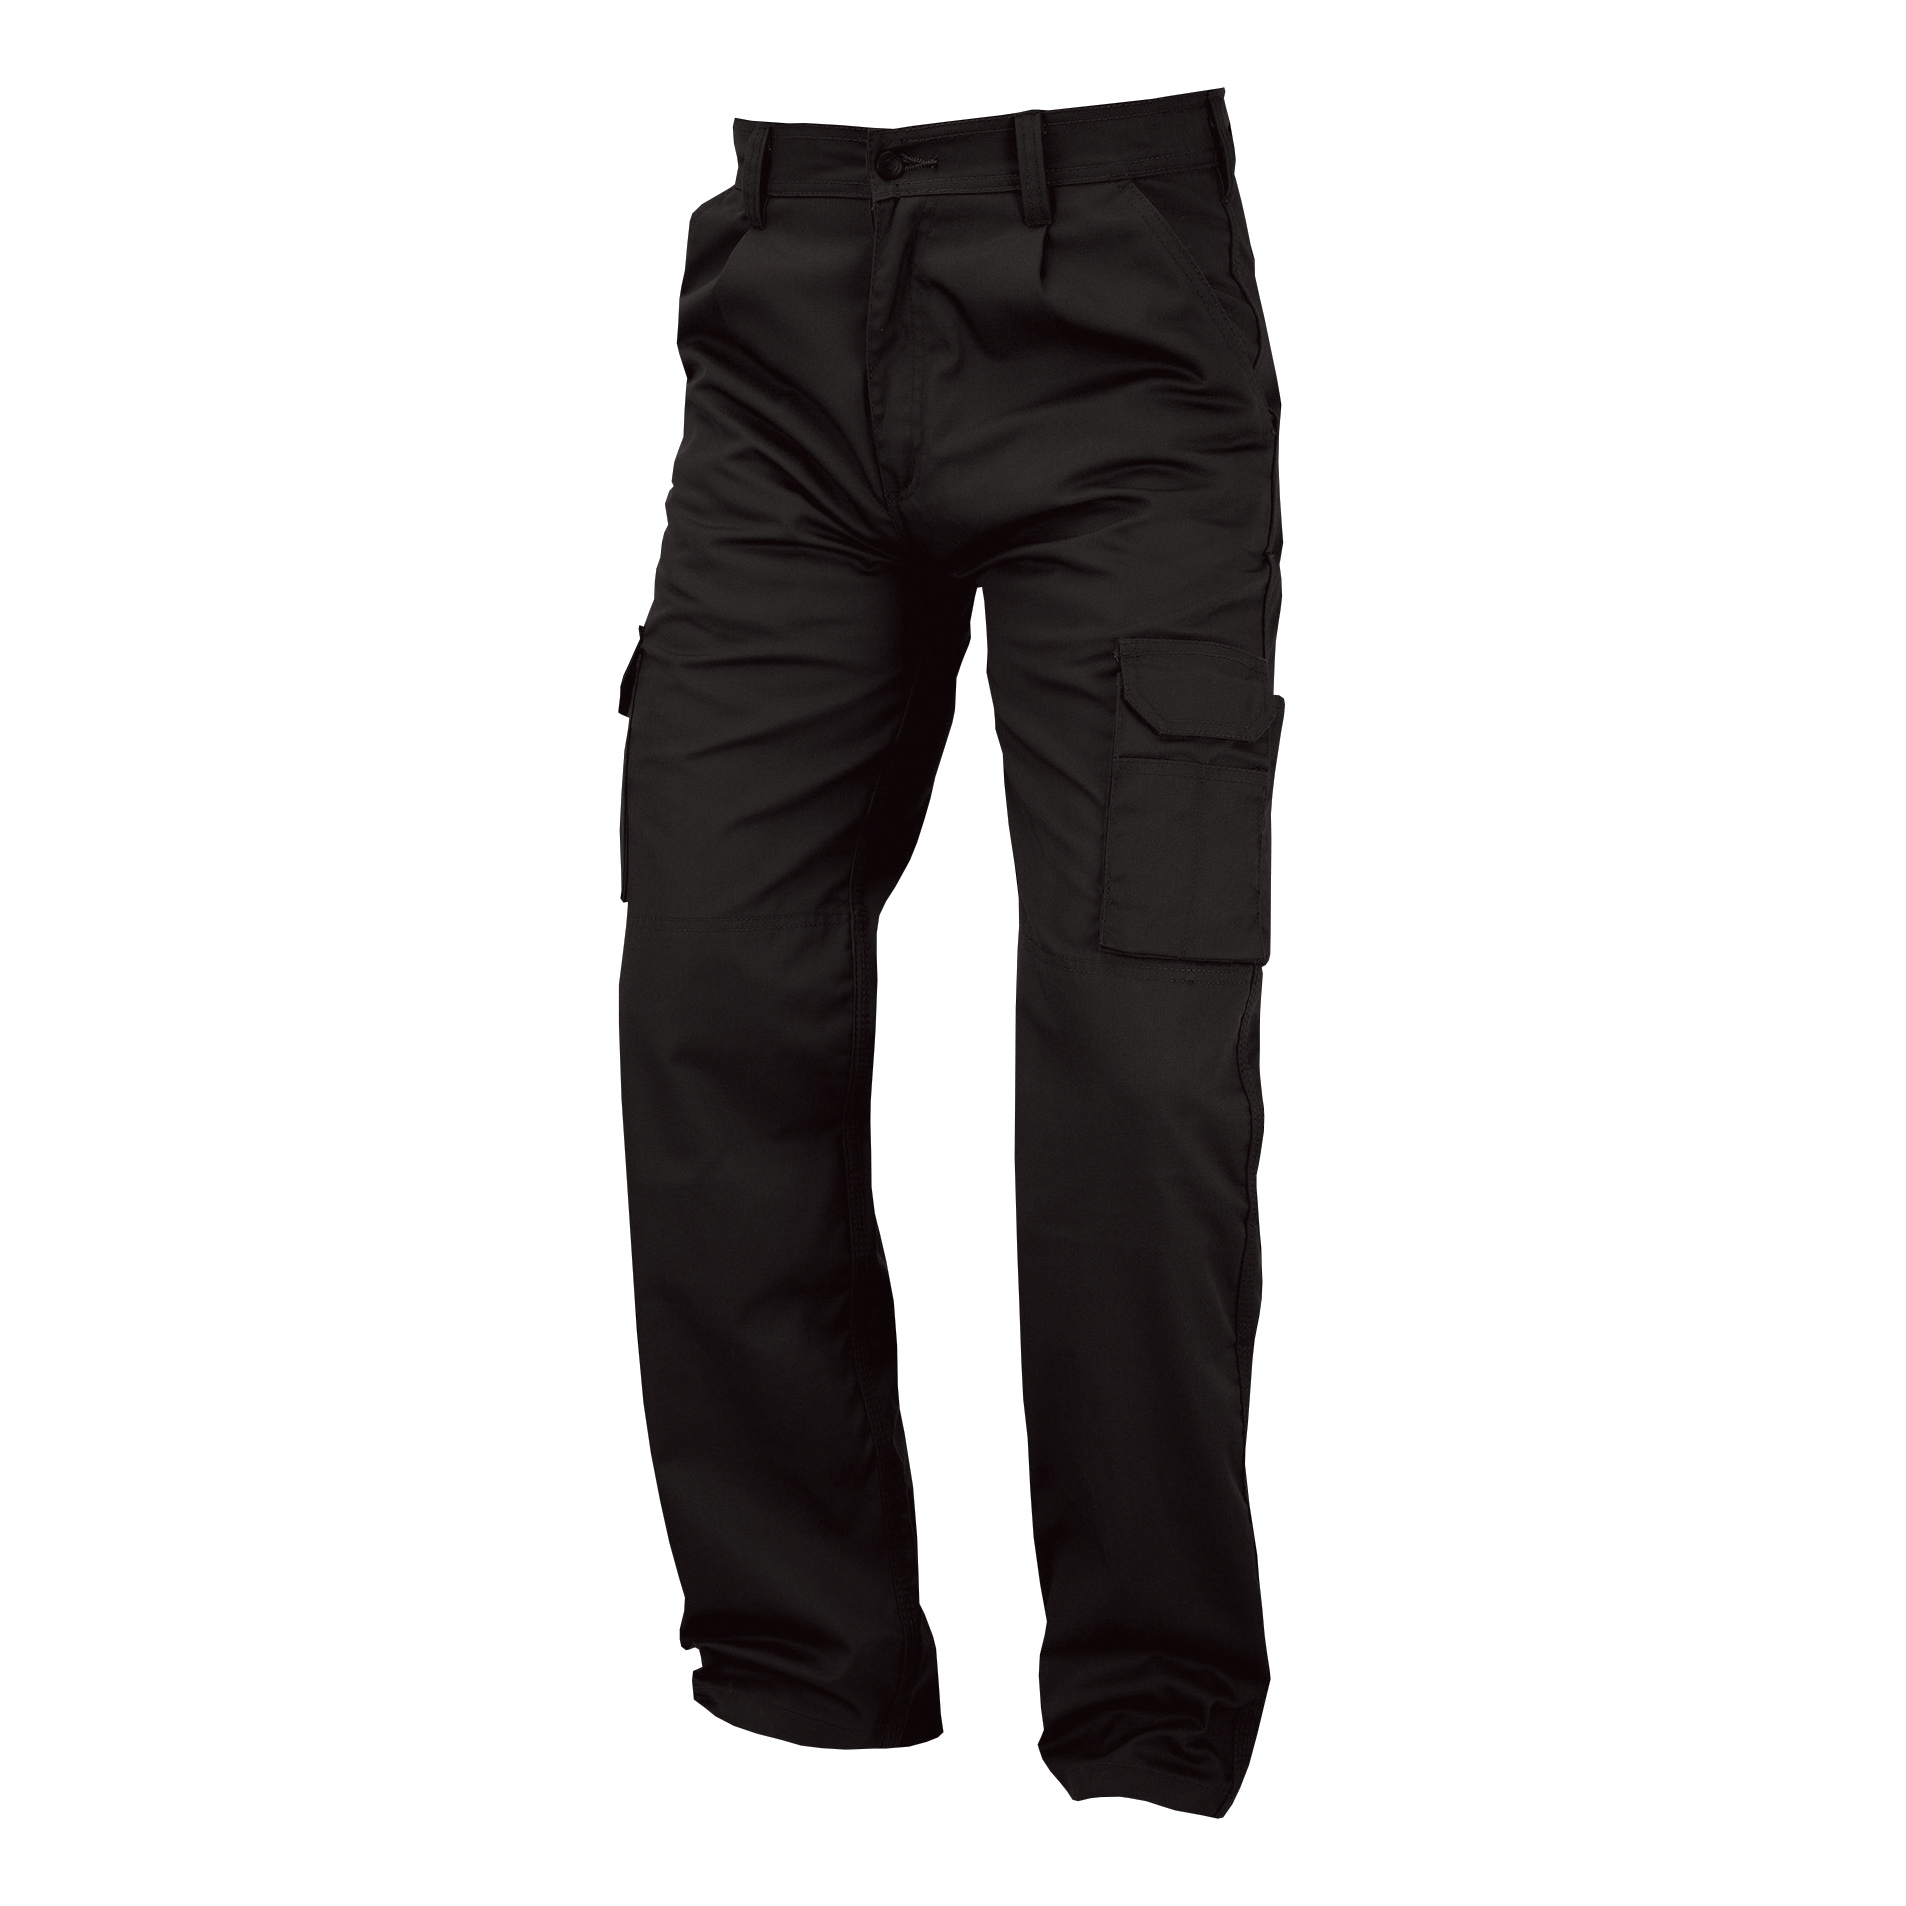 Combat / Cargo Combat Trousers Polycotton with Pockets 36in Regular Black Ref PCTHWBL34T *1-3 Days Lead Time*